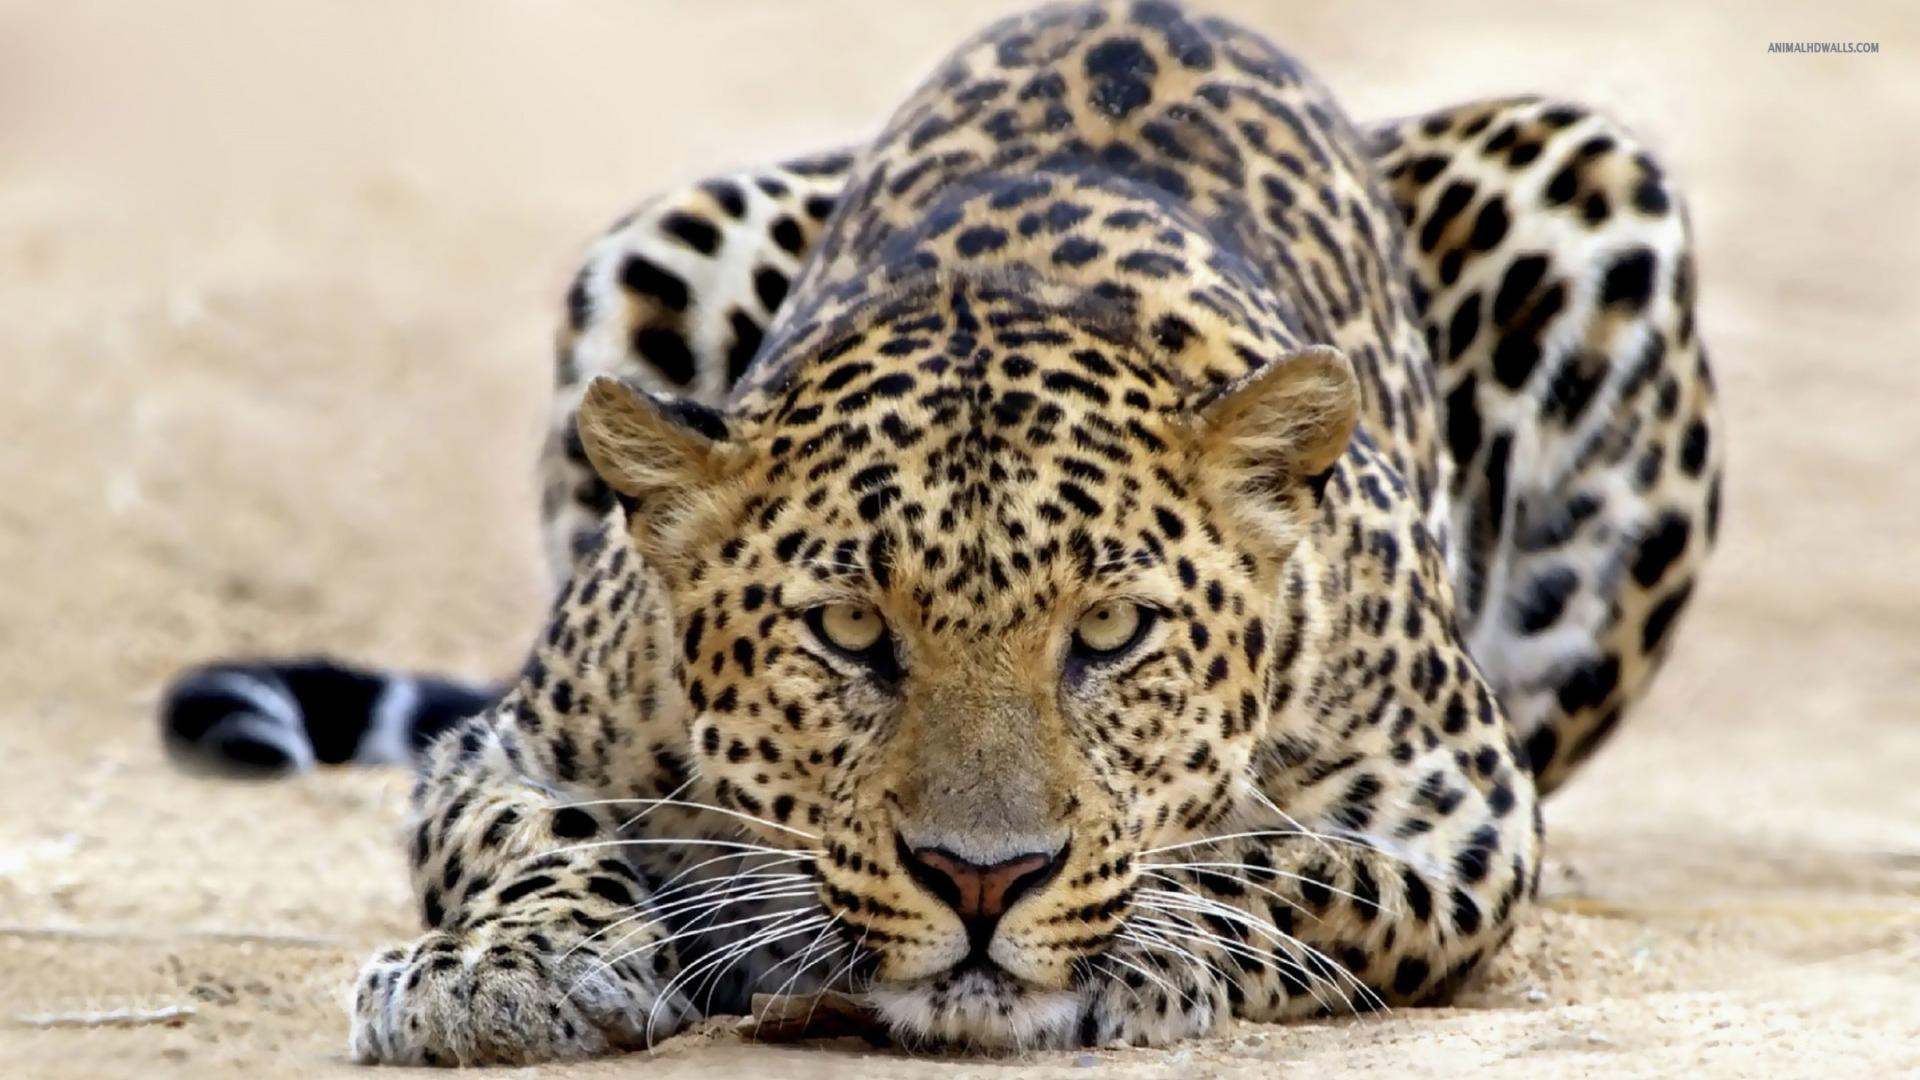 Wallpaper Of Leopard 1920x1080